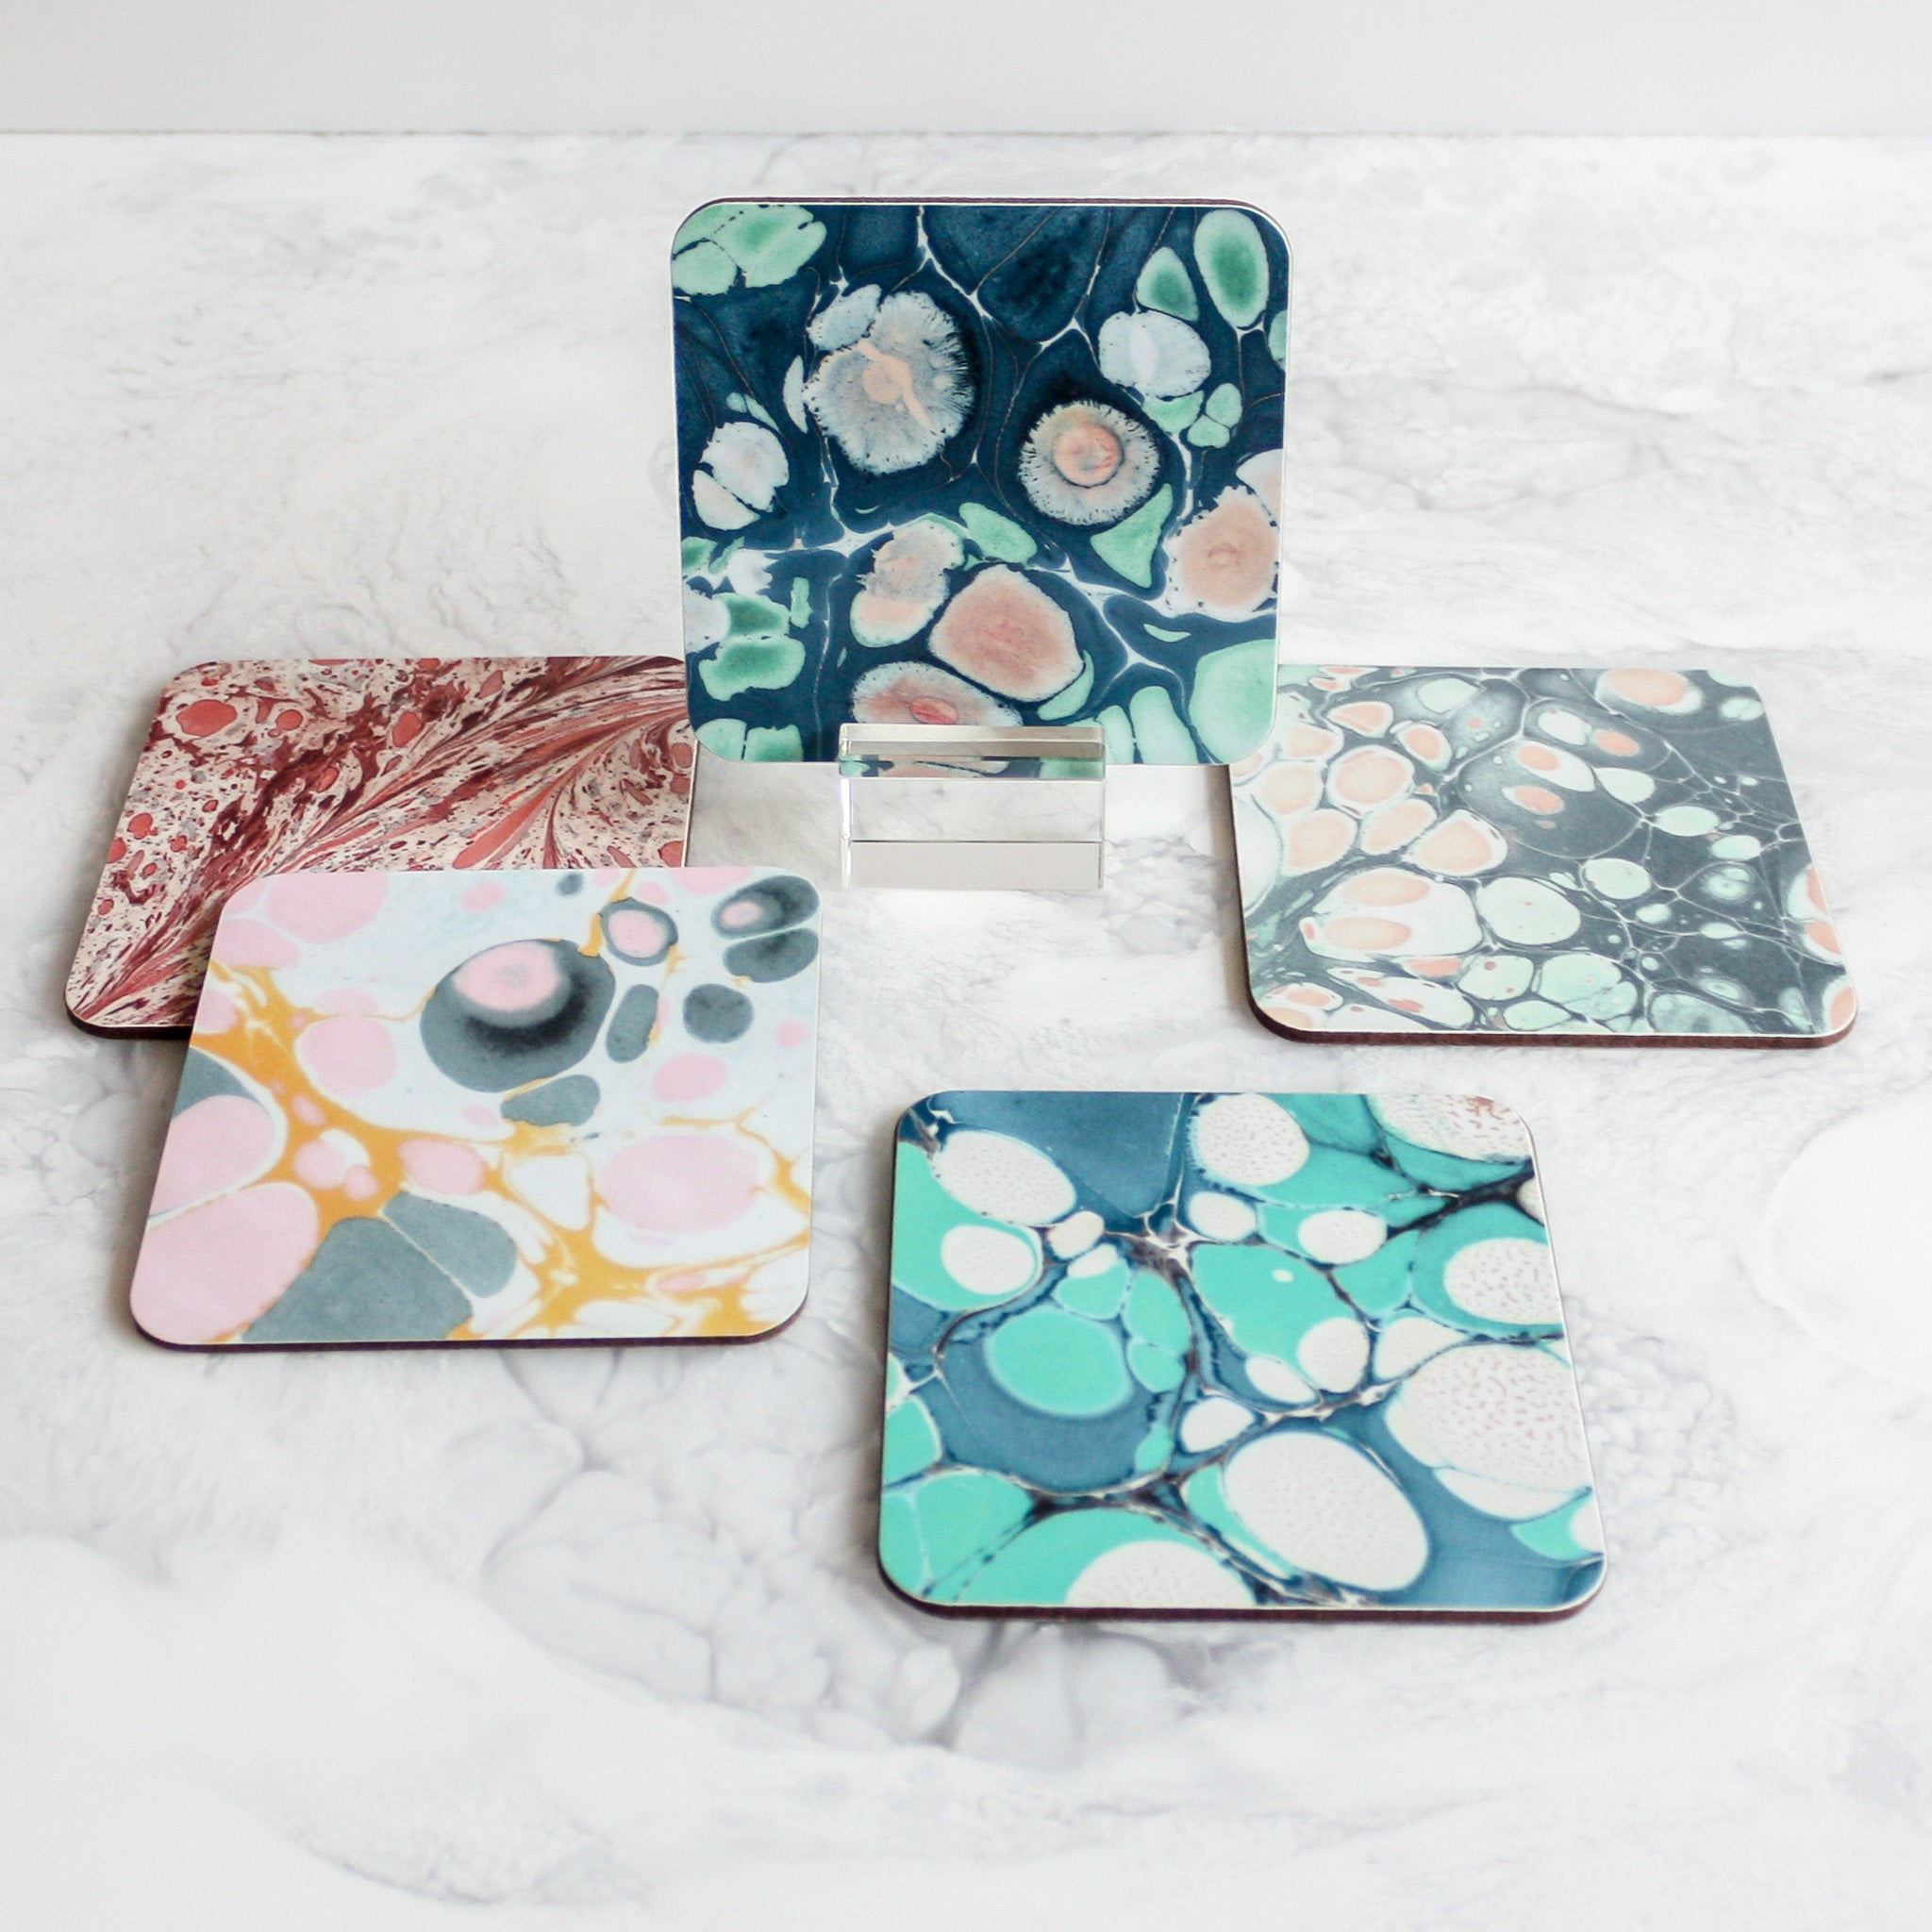 Marbleized coasters